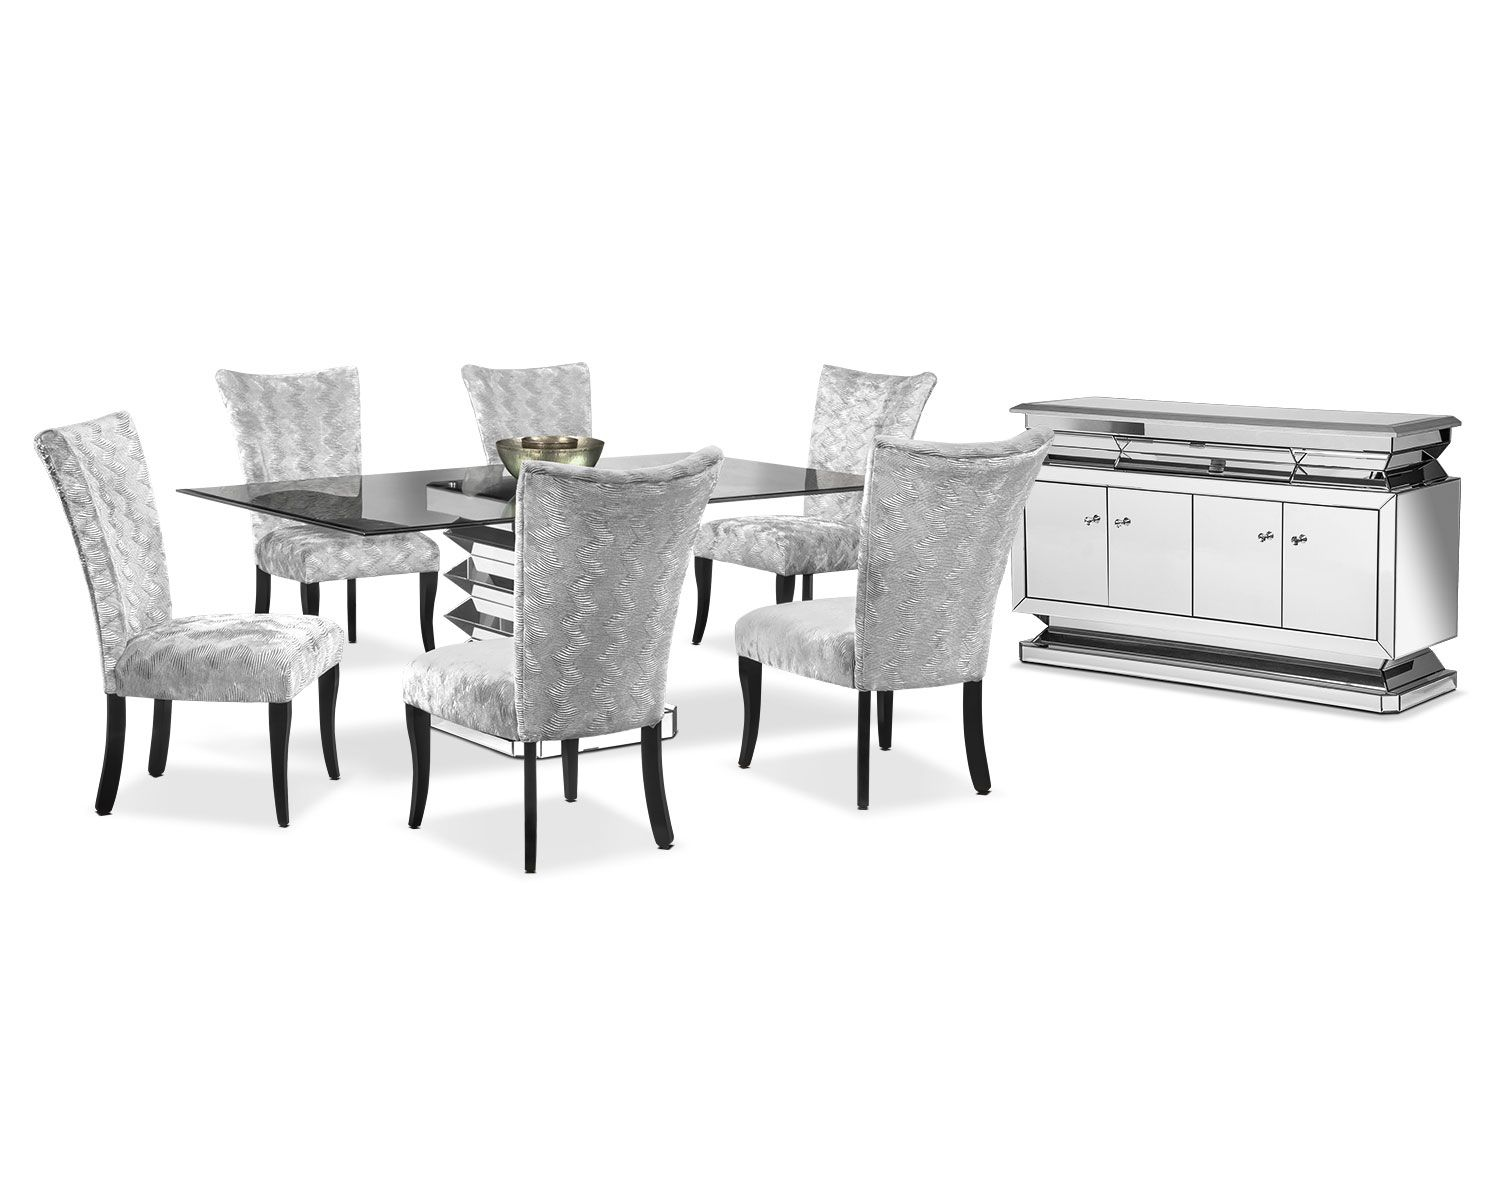 beautiful meals the vibrato dining collection in silver maintains dining room furniture vibrato table and 6 chairs silver